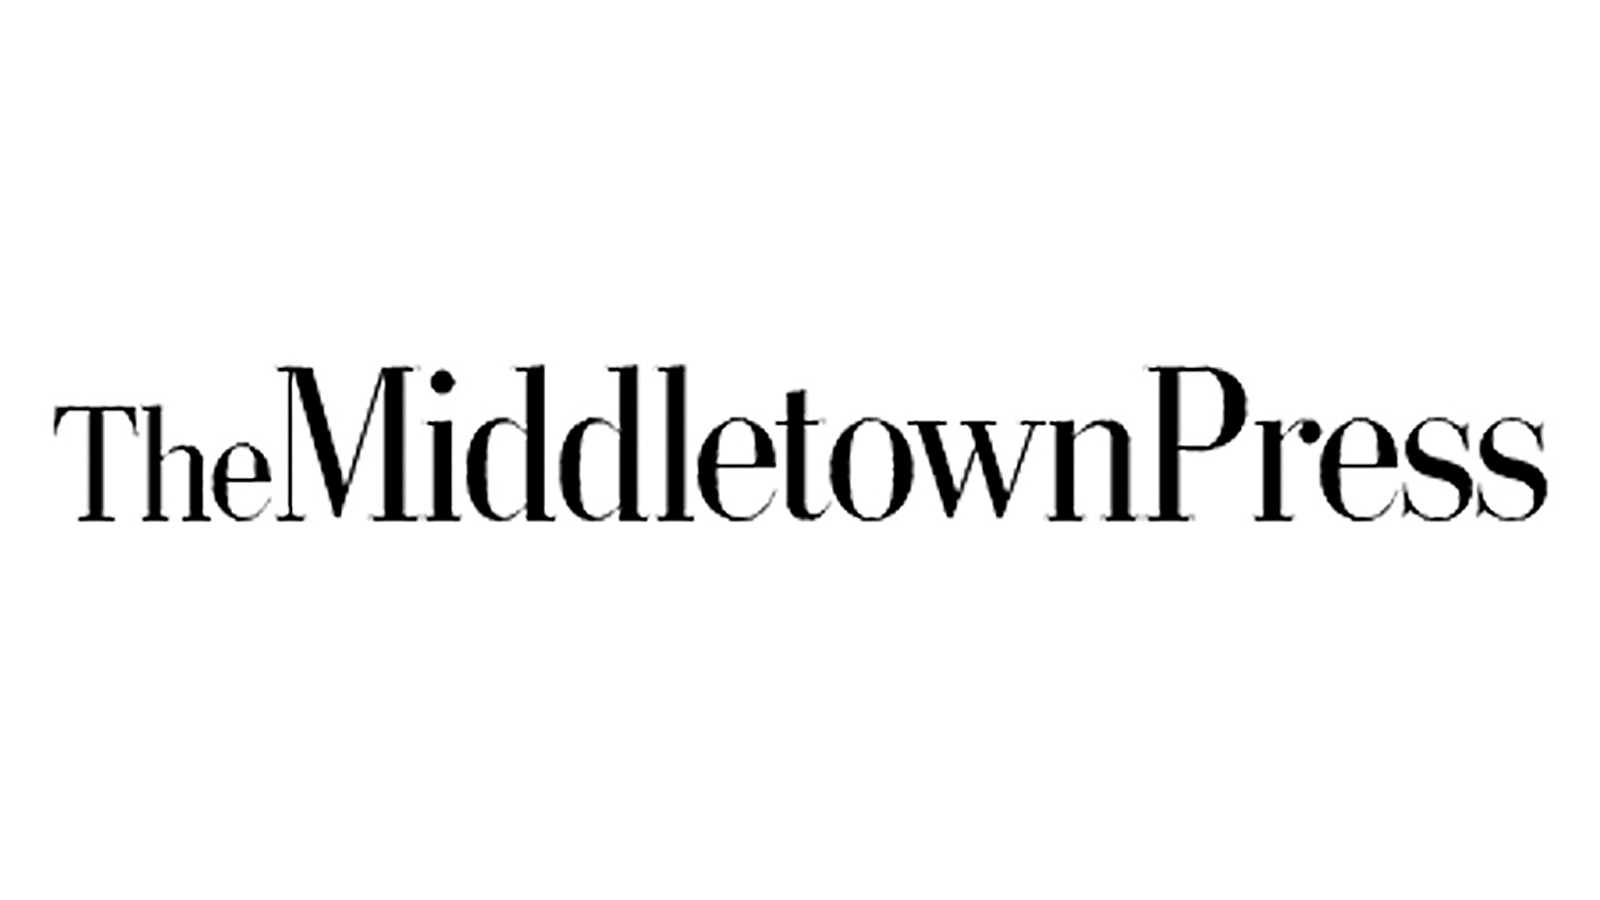 The Middletown Press